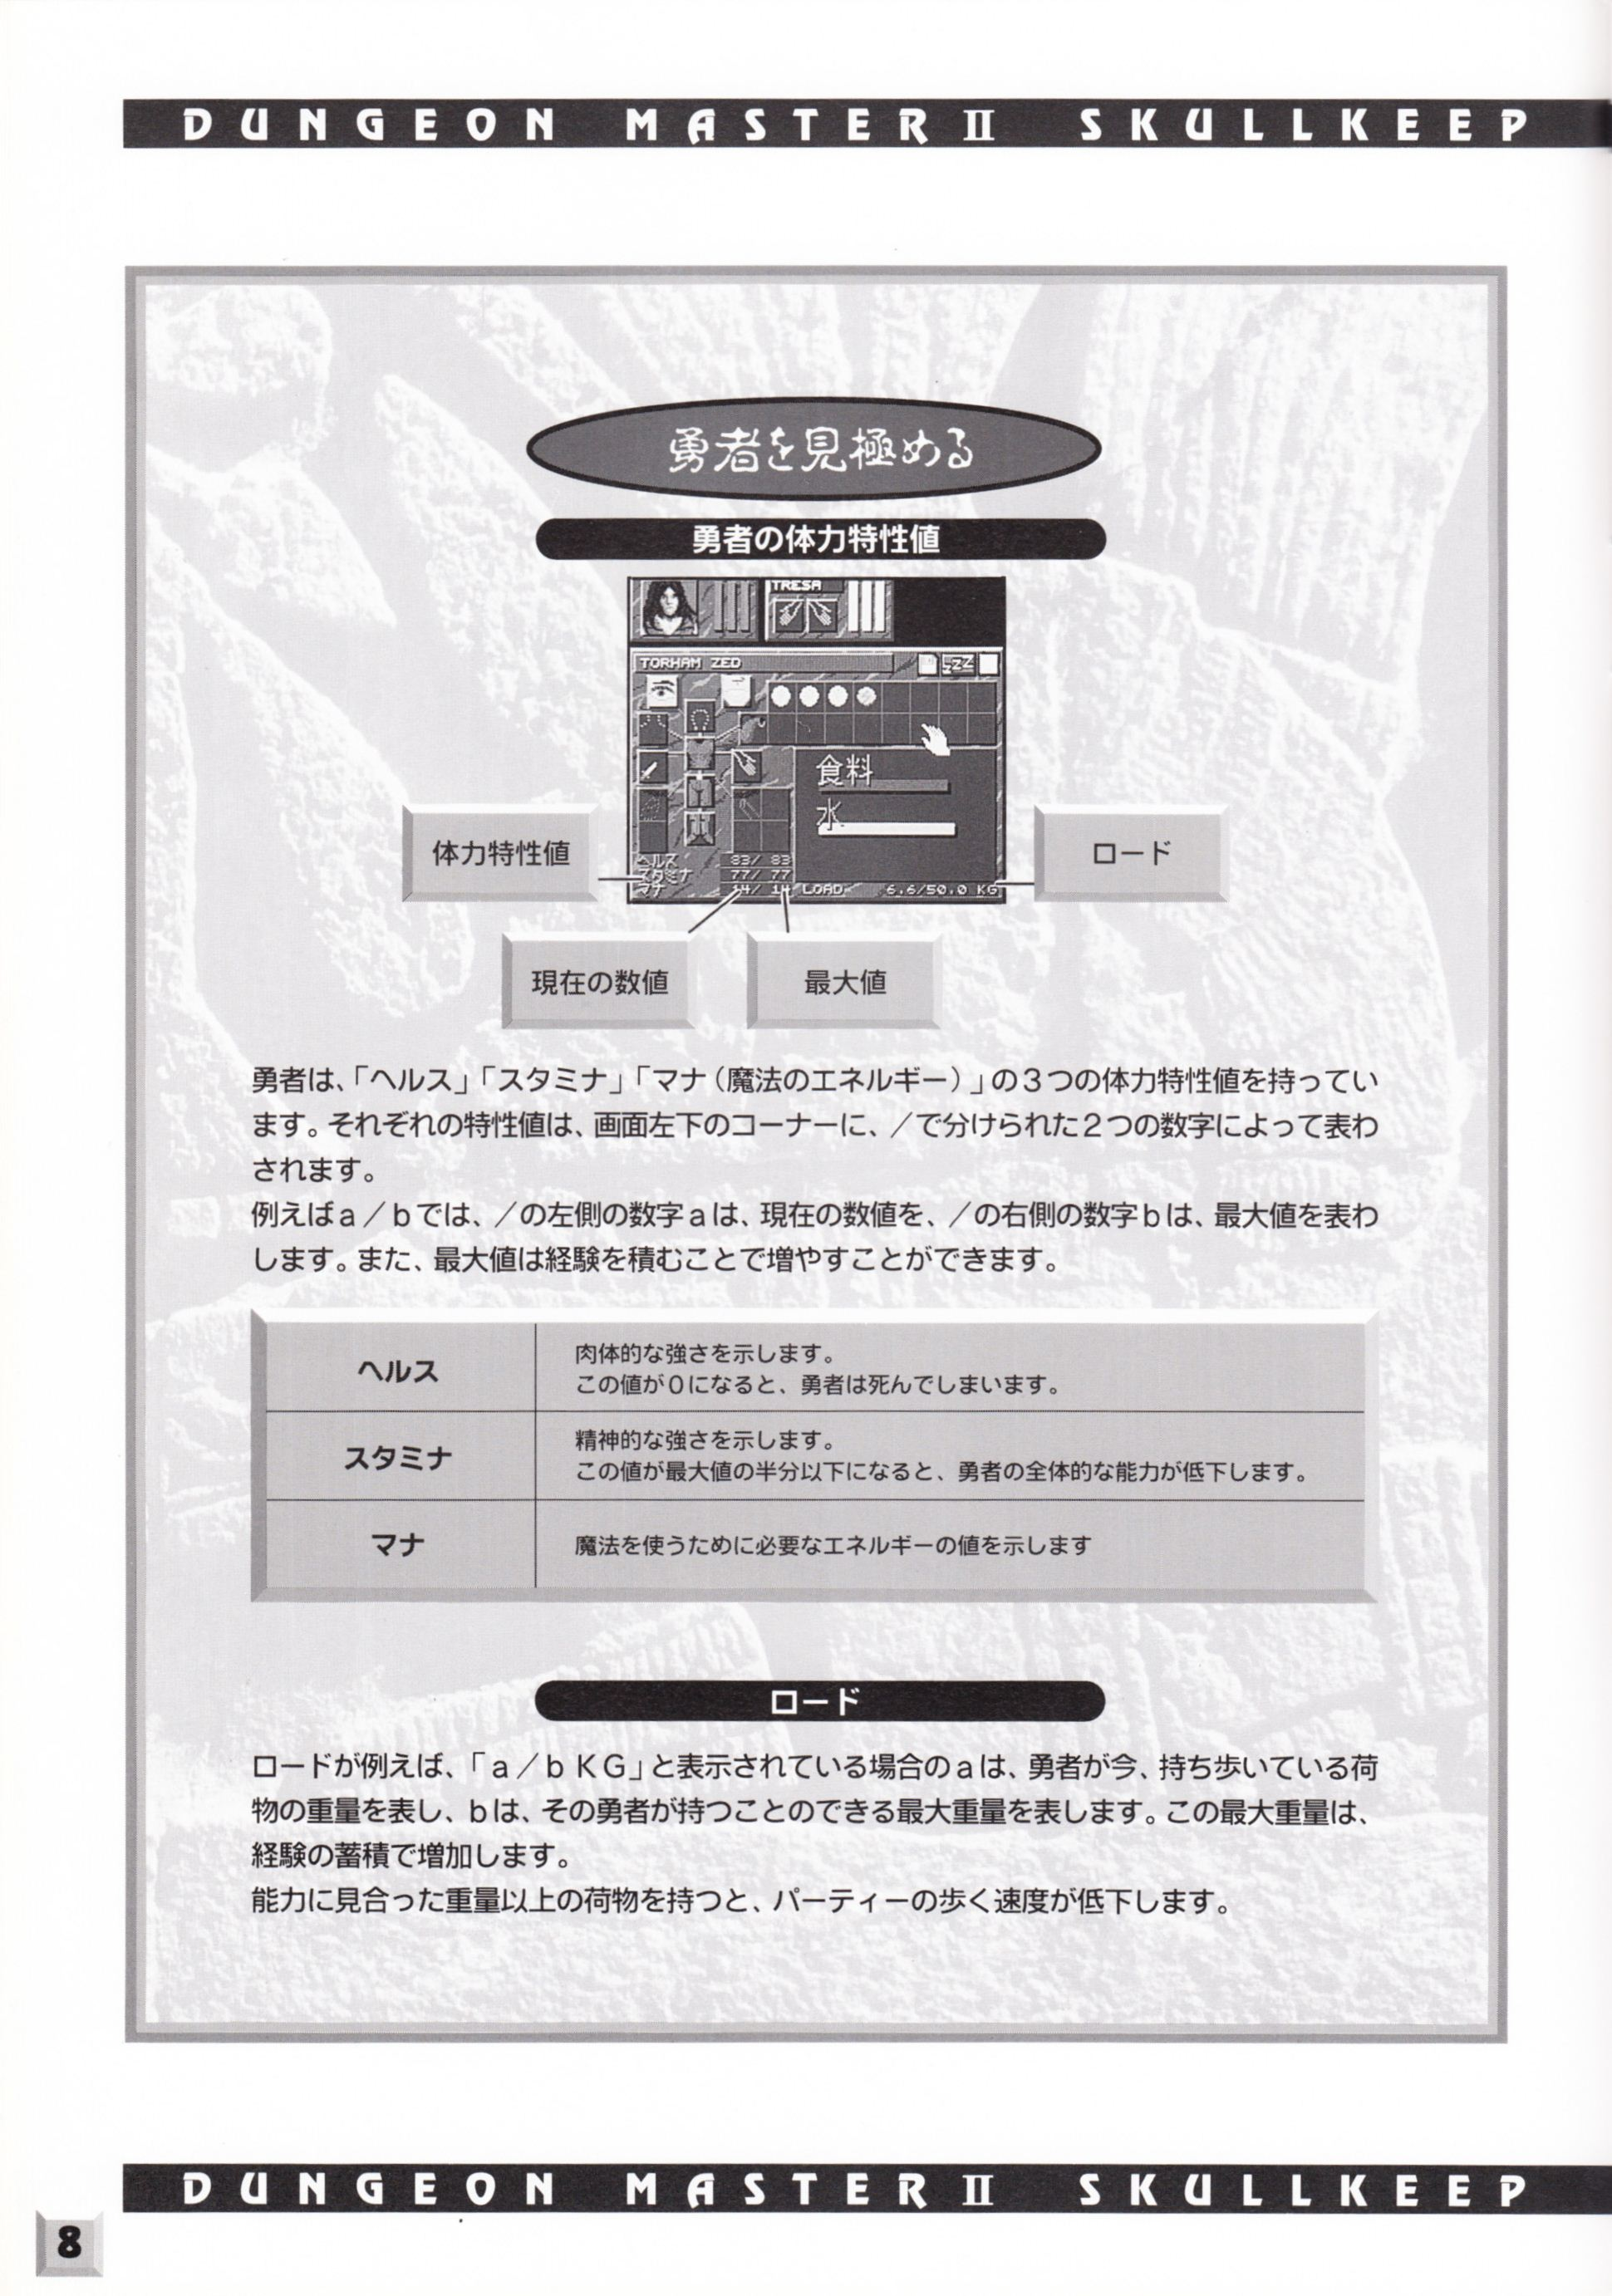 Game - Dungeon Master II - JP - PC-9801 - 3.5-inch - An Operation Manual - Page 010 - Scan